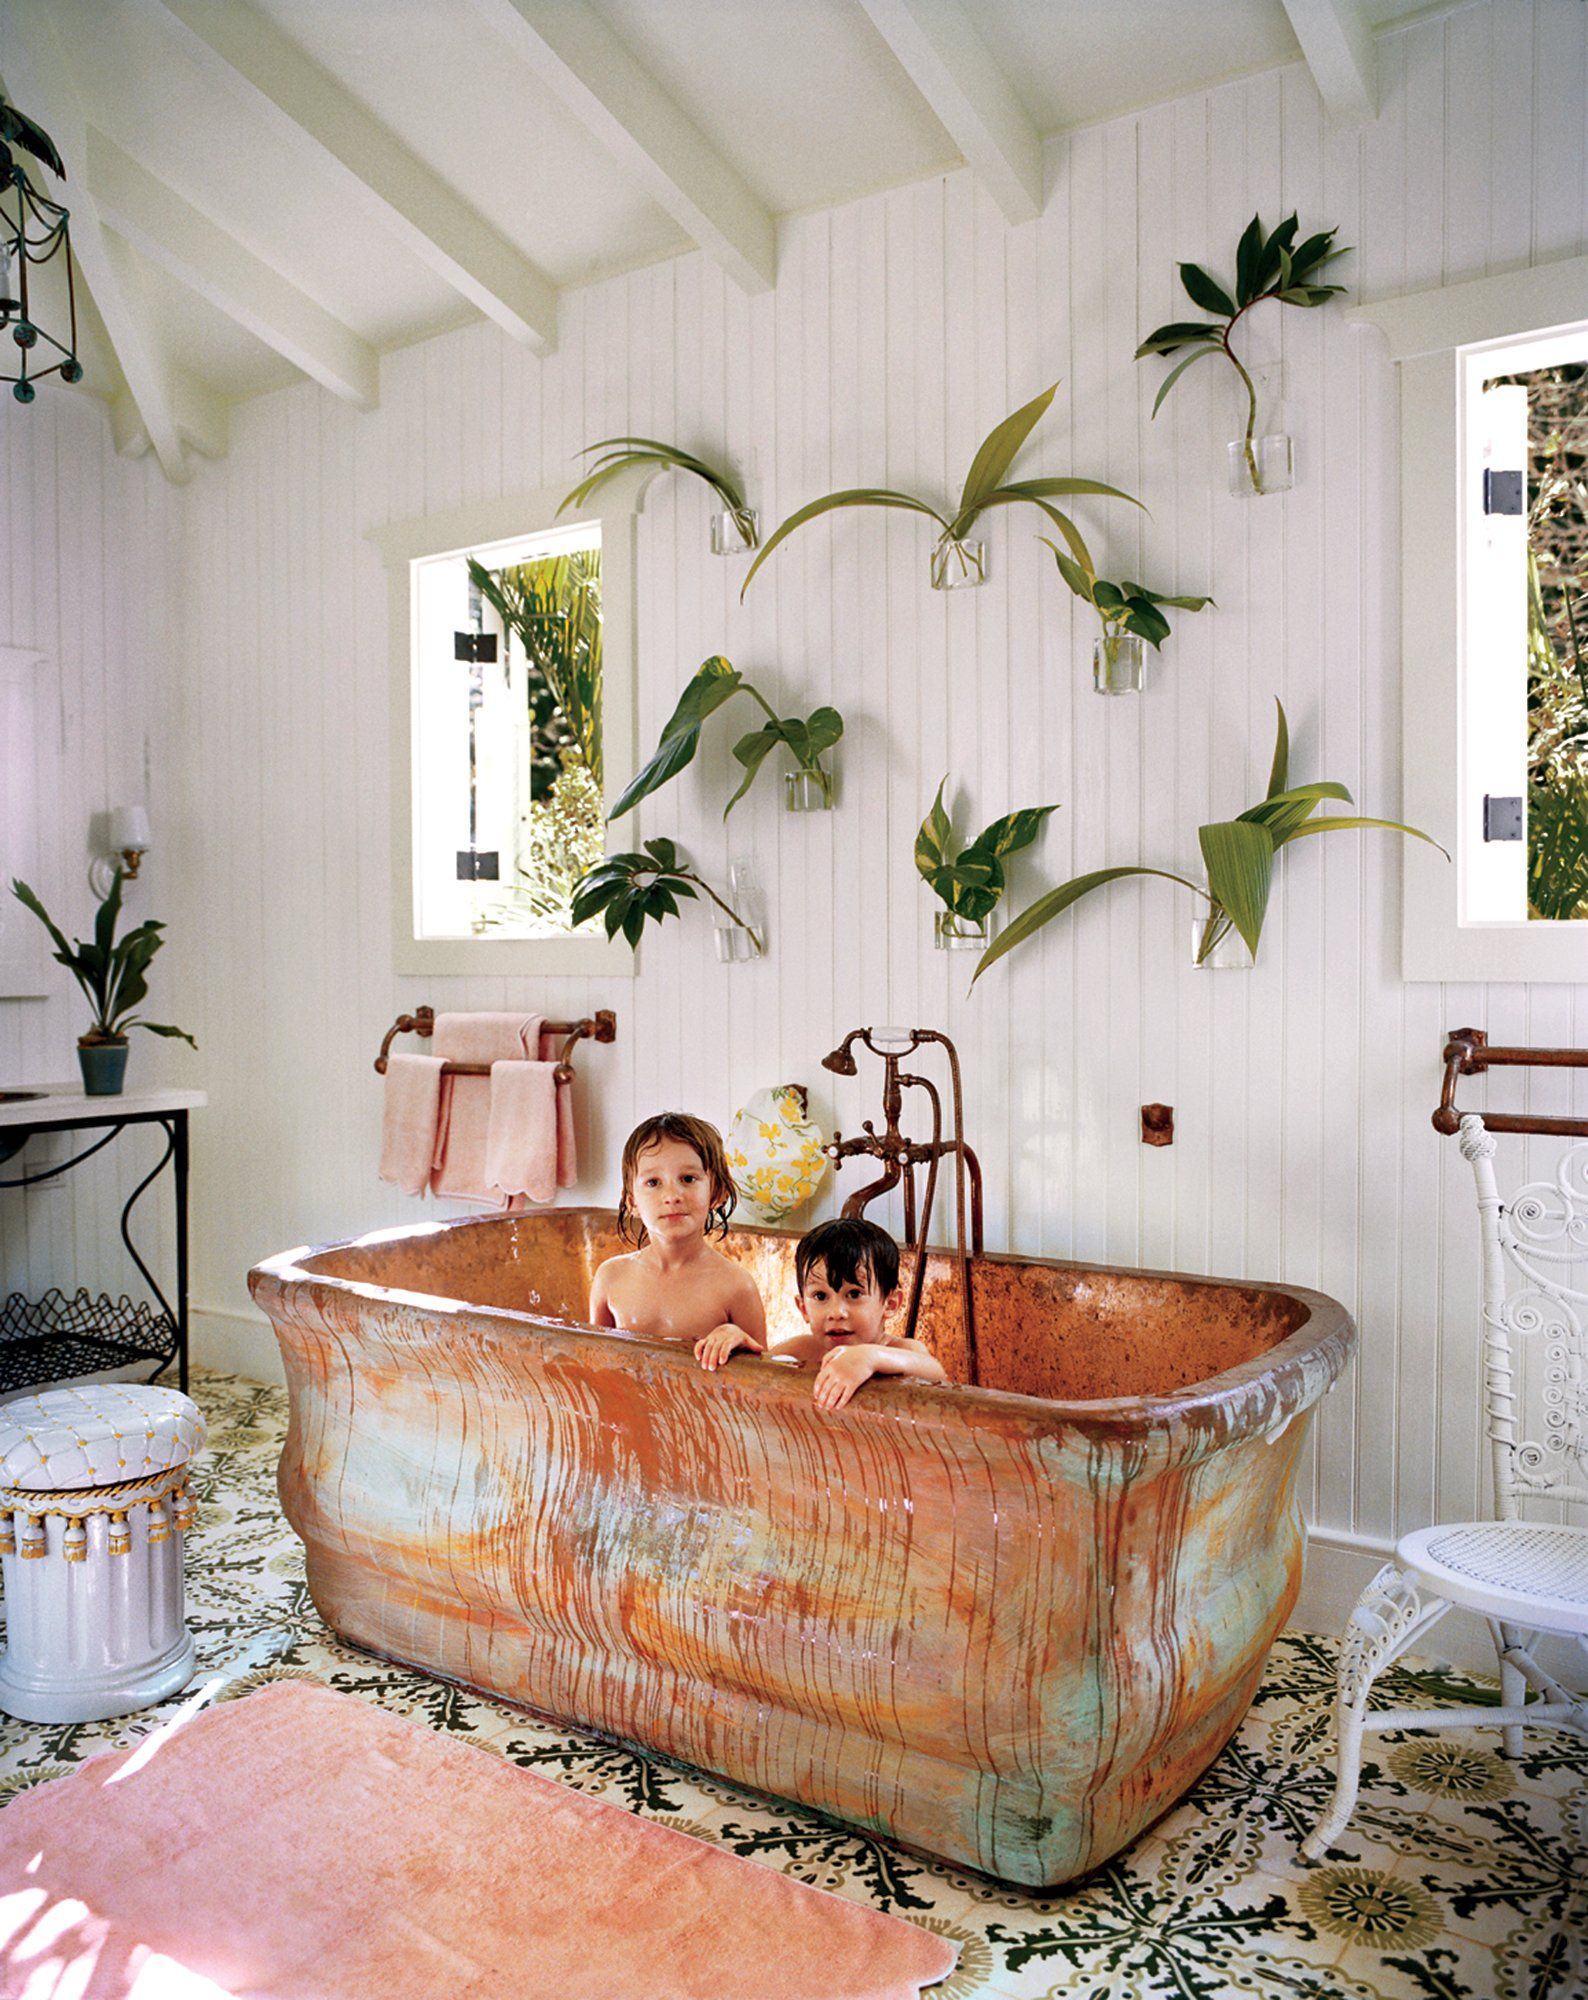 Celerie Kemble's children in her Dominican Republic oversize copper tub.